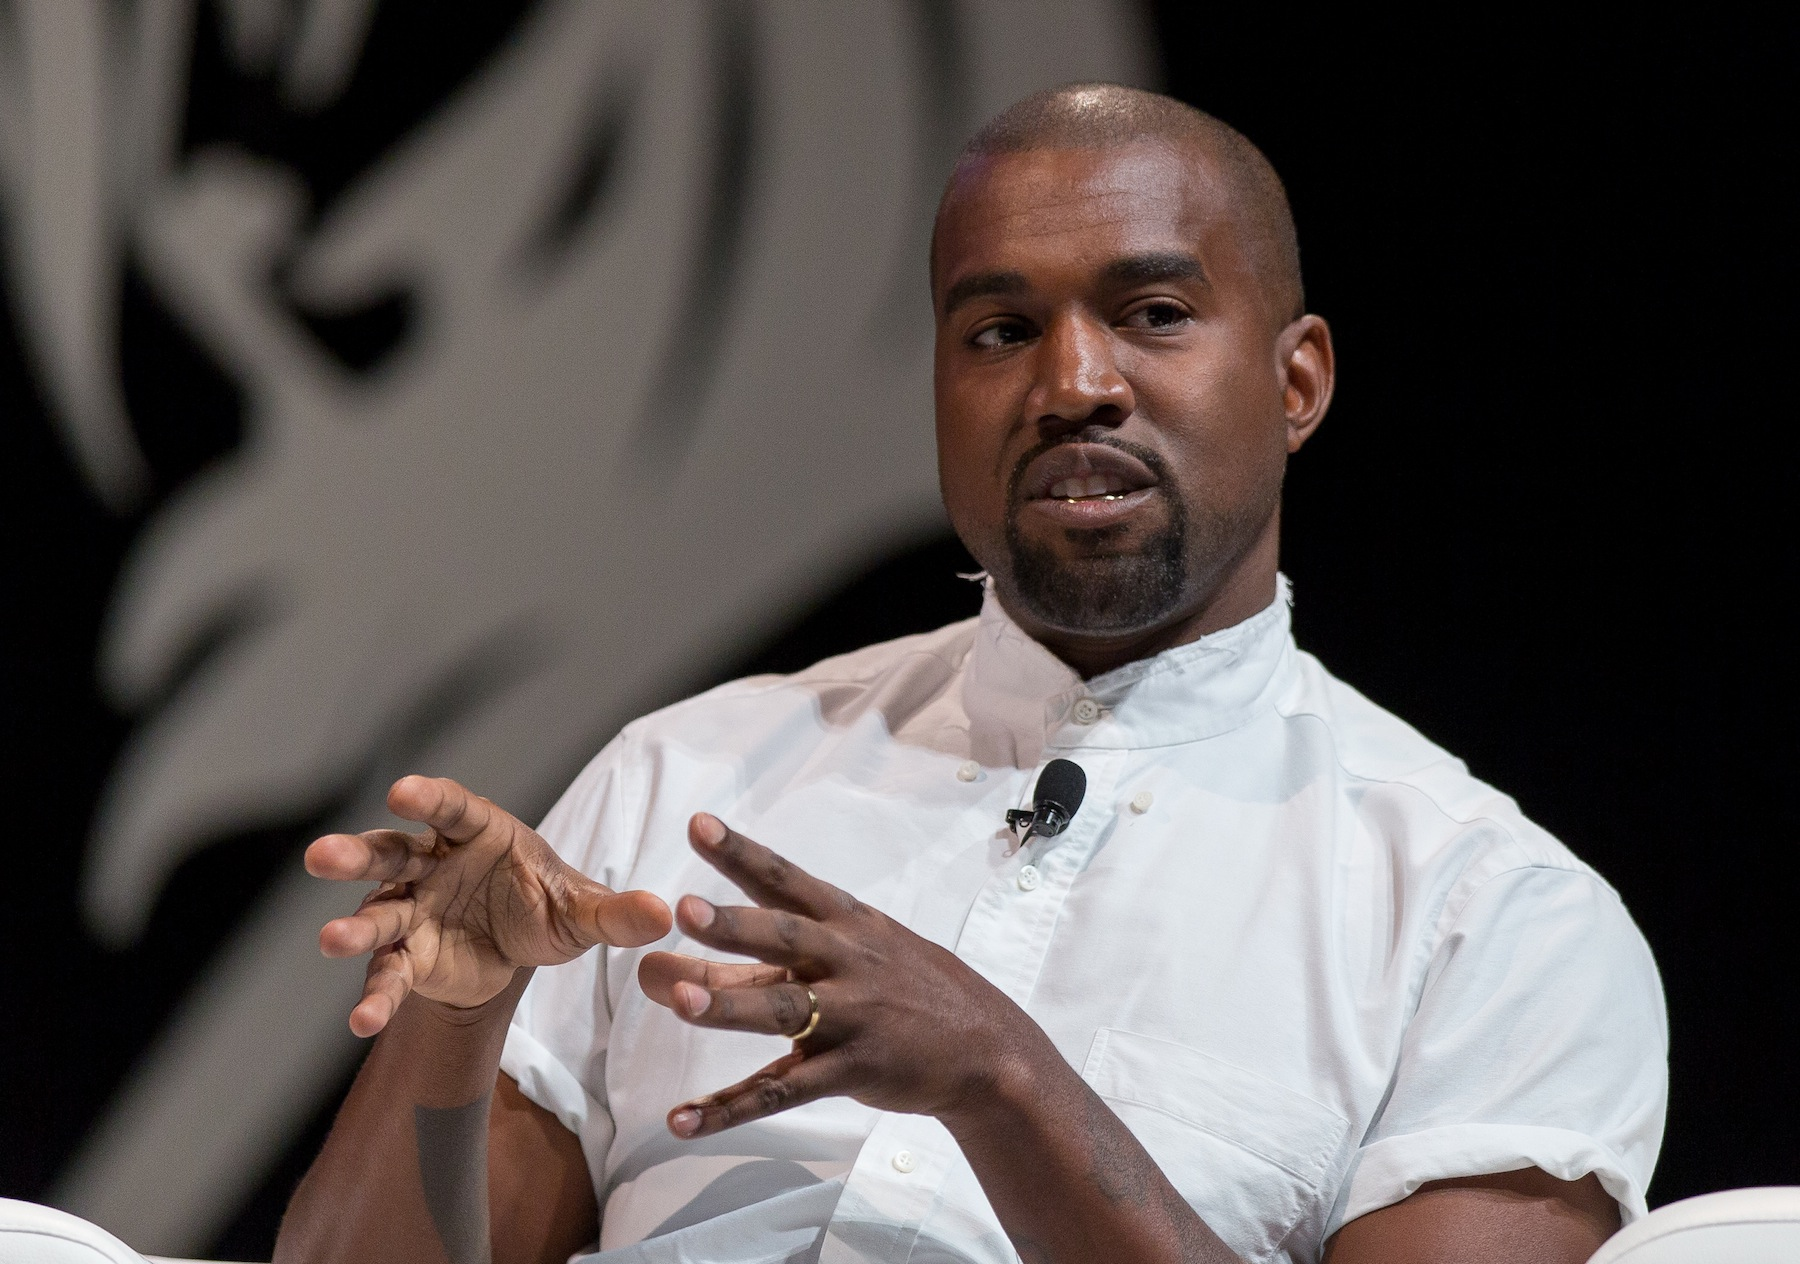 Kanye West attends the 2014 Cannes Lions on June 17, 2014, in Cannes, France